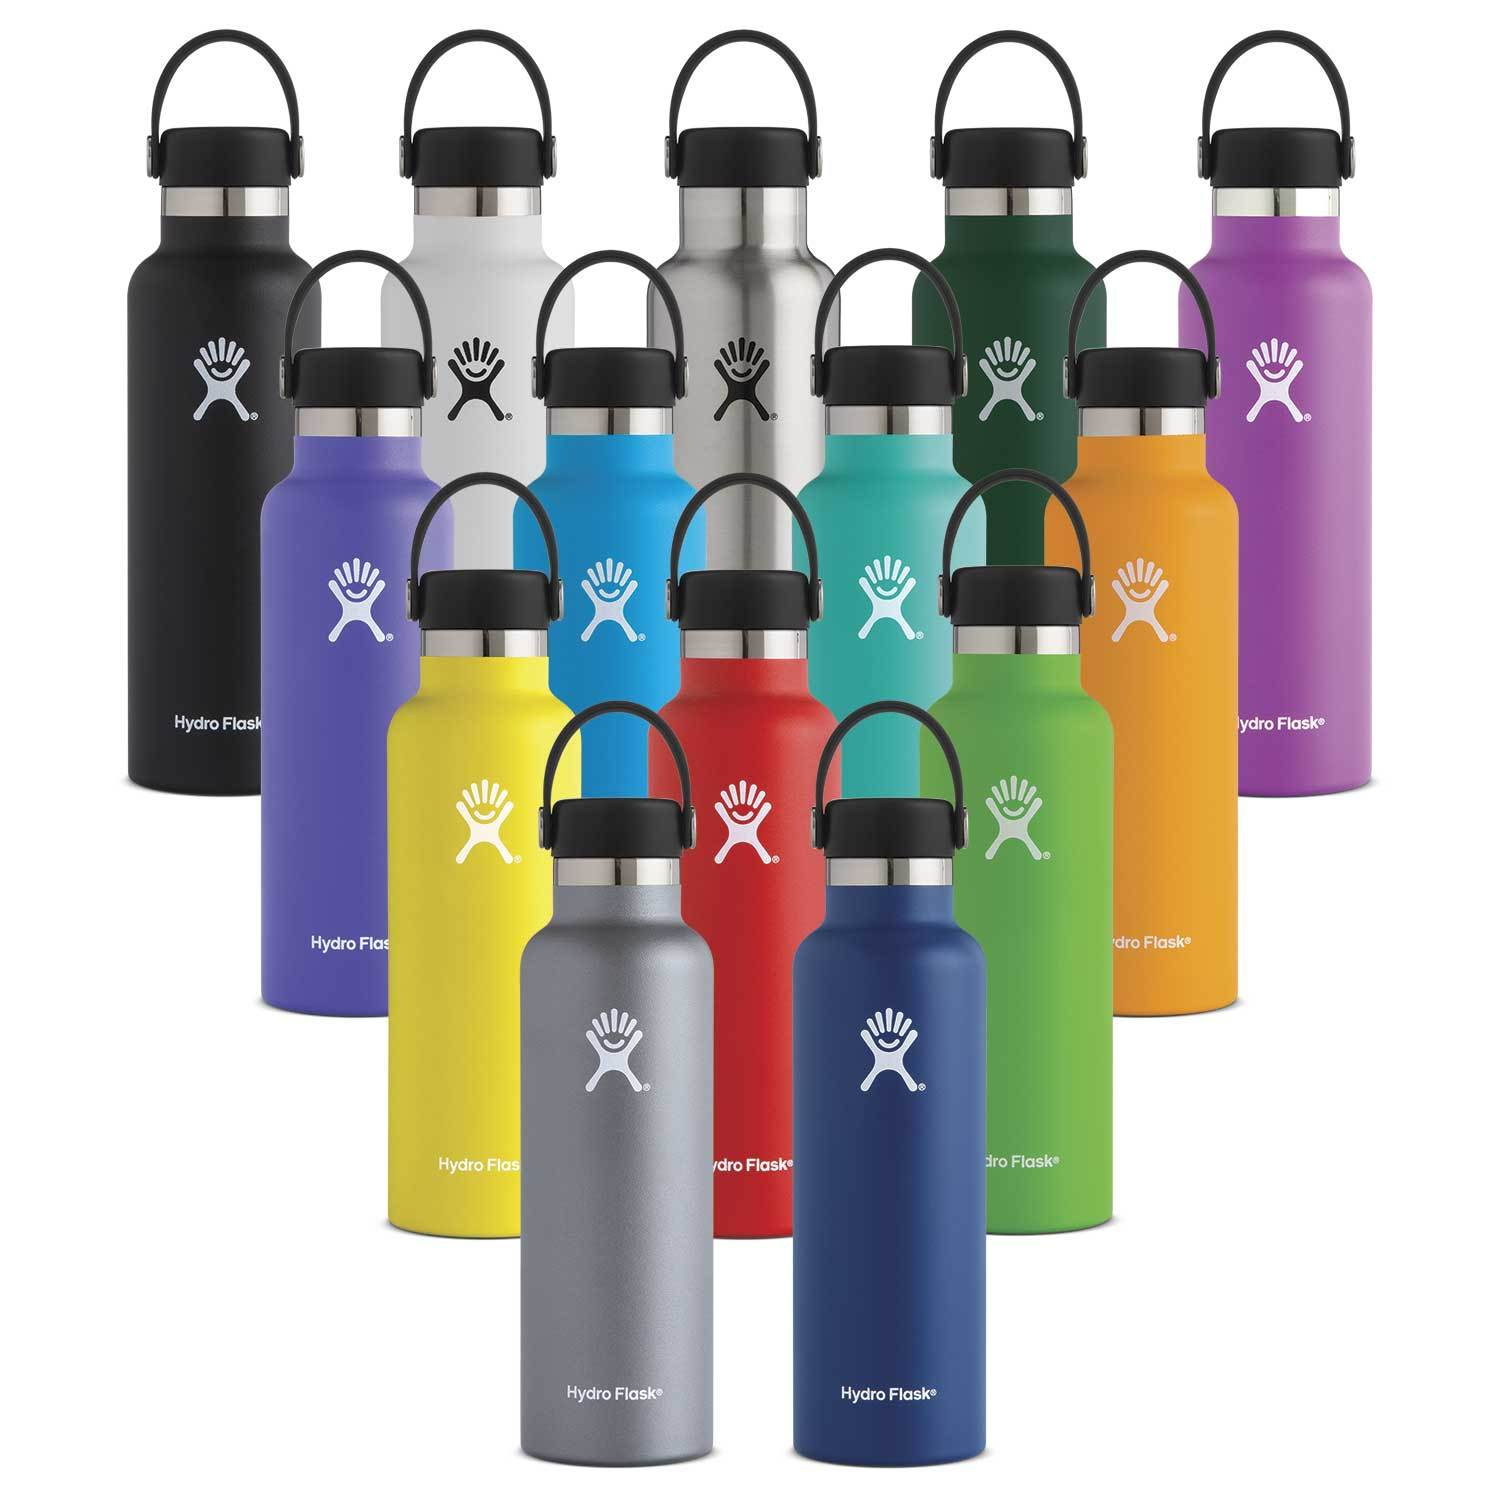 Hydro Flask Insulated 21 Oz Water Bottle | Boundary Waters Catalog